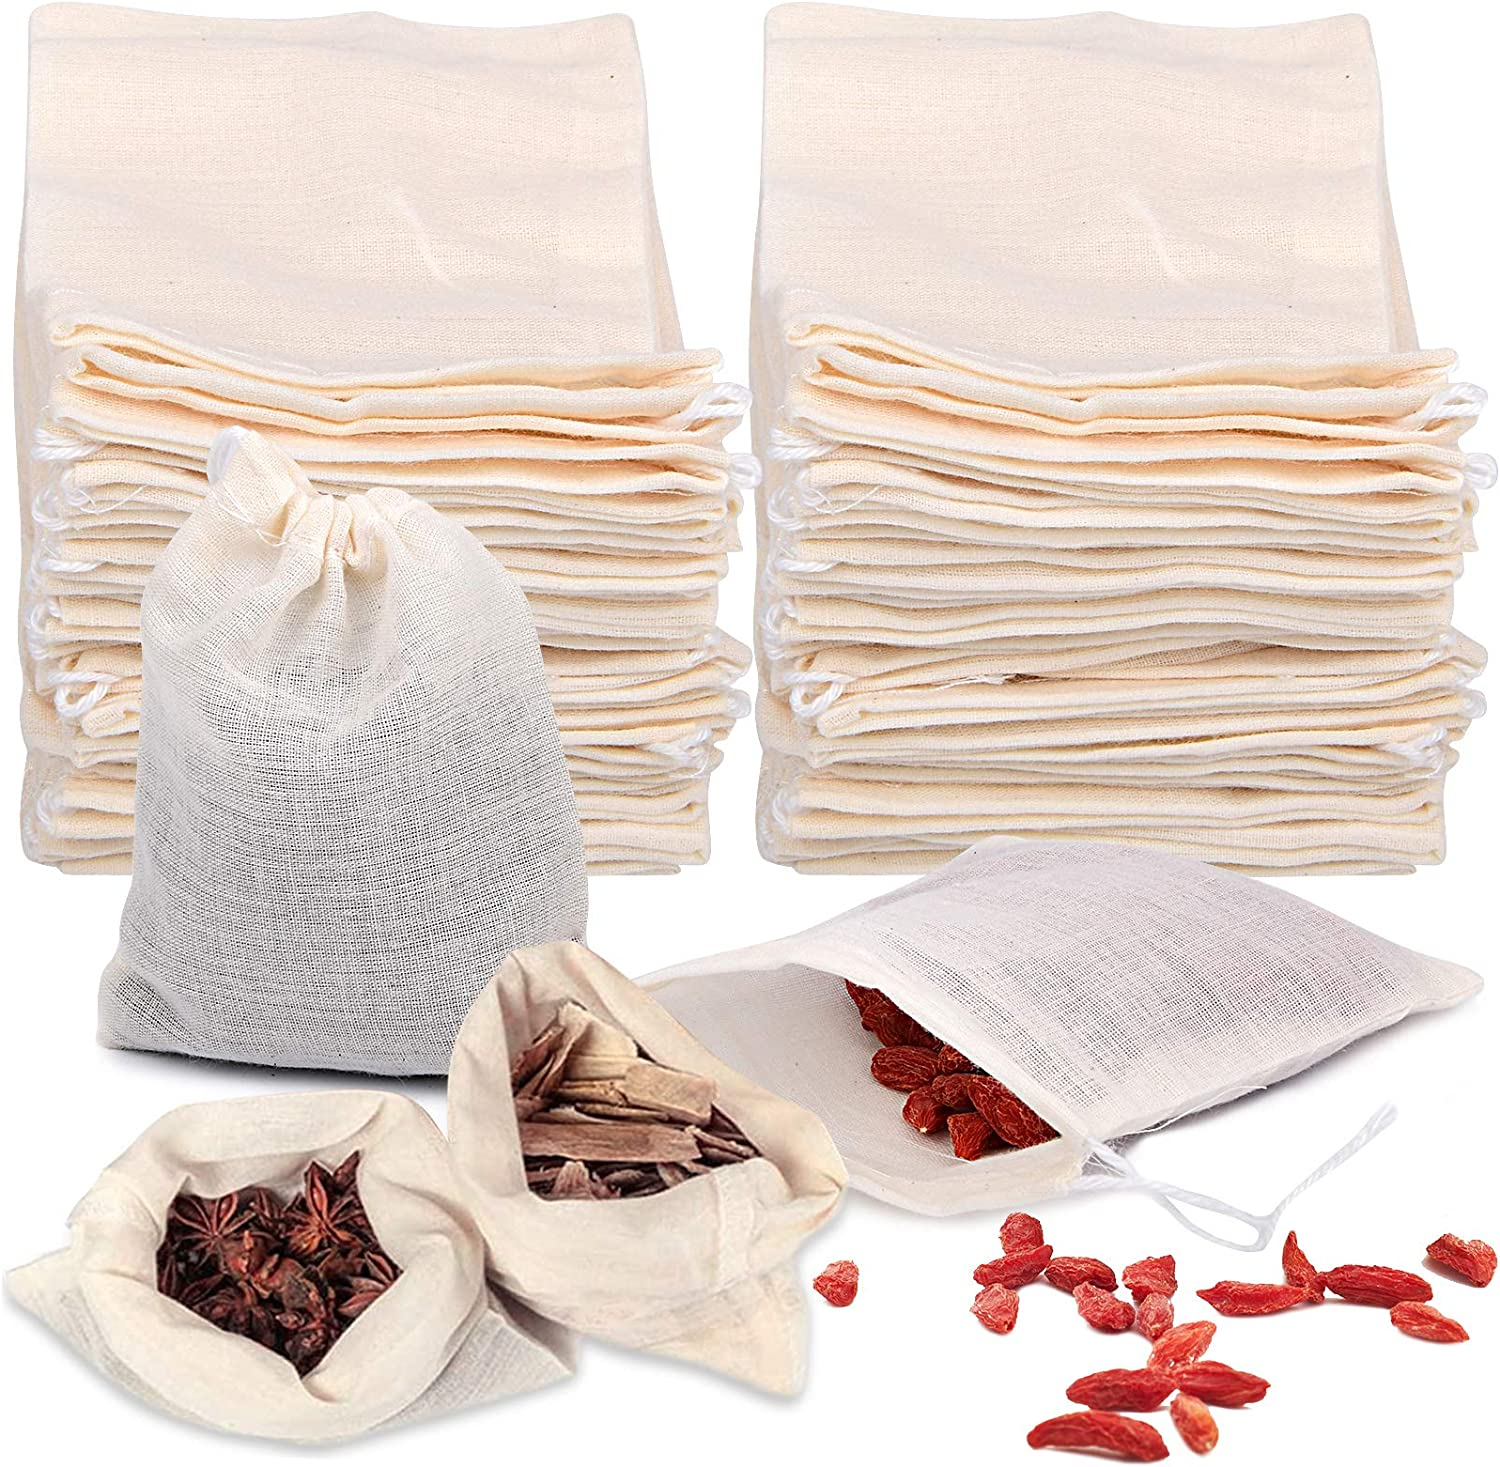 50 Pieces Tea Filters Strainer Bags Reusable Coffee Brew Herb Cheesecloth Muslin Drawstring Mesh Bag with Drawstring Safe Penetration Unbleached for Loose Leaf Tea Office Home Kitchen, 4x3 Inch Beige